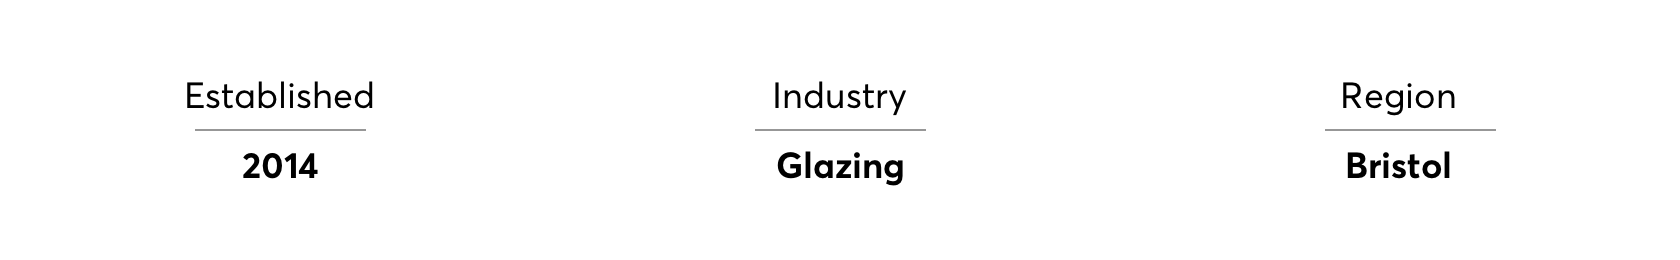 Established: 2014,  Industry: Glazing,  Region: Bristol